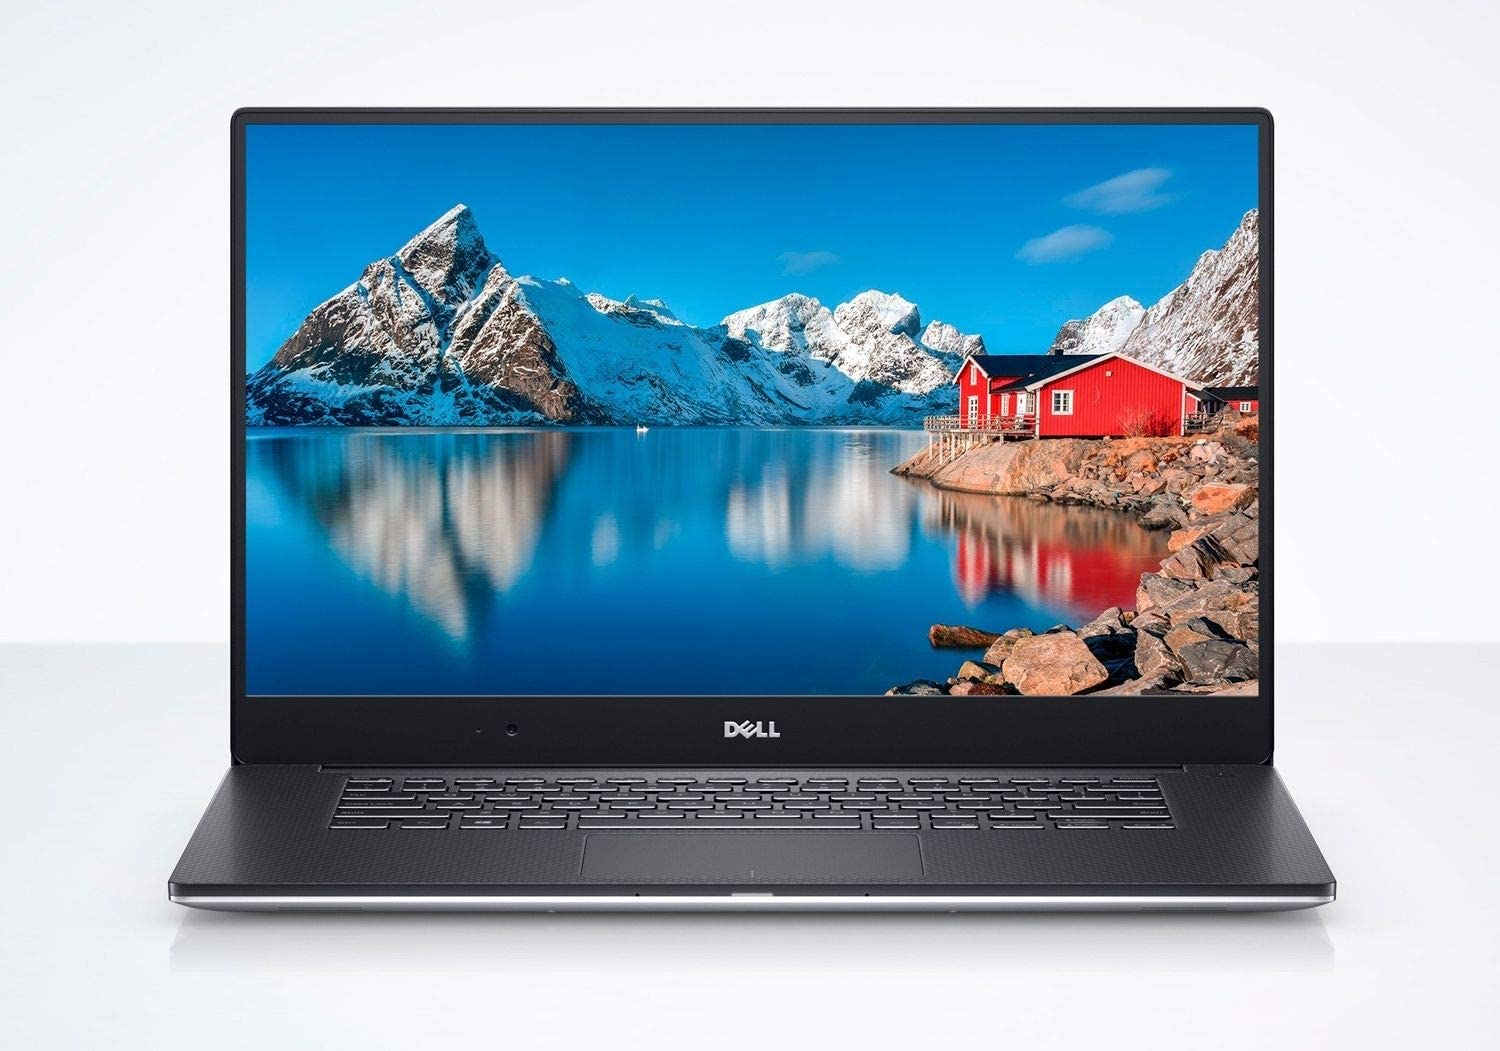 Dell Precision 15 5520 Anniversary Edition Intel Xeon E3-1505m v6 16GB RAM 512GB SSD 15.6'' 4K UHD (3840x2160) Touch-Screen NVIDIA Quadro M1200 (Renewed)